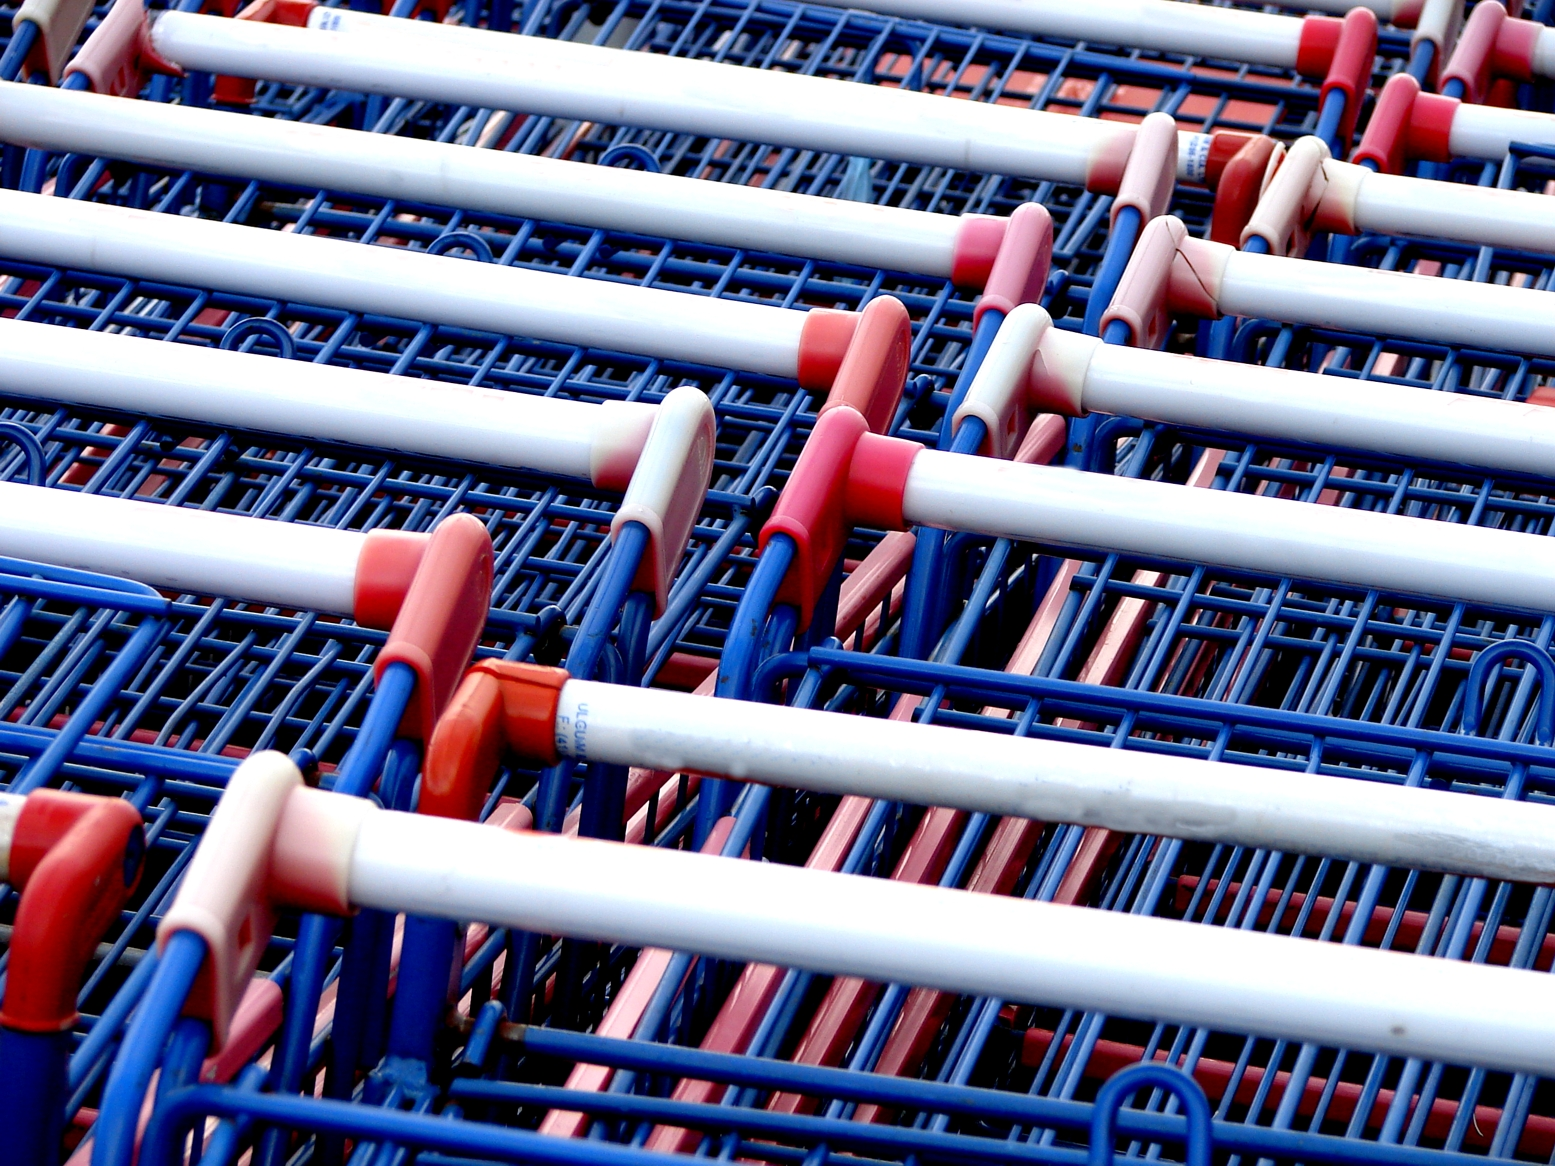 The Food and Grocery Code of Conduct came into effect 16 June 2015 with Woolworths and Aldi the first major players to sign on.